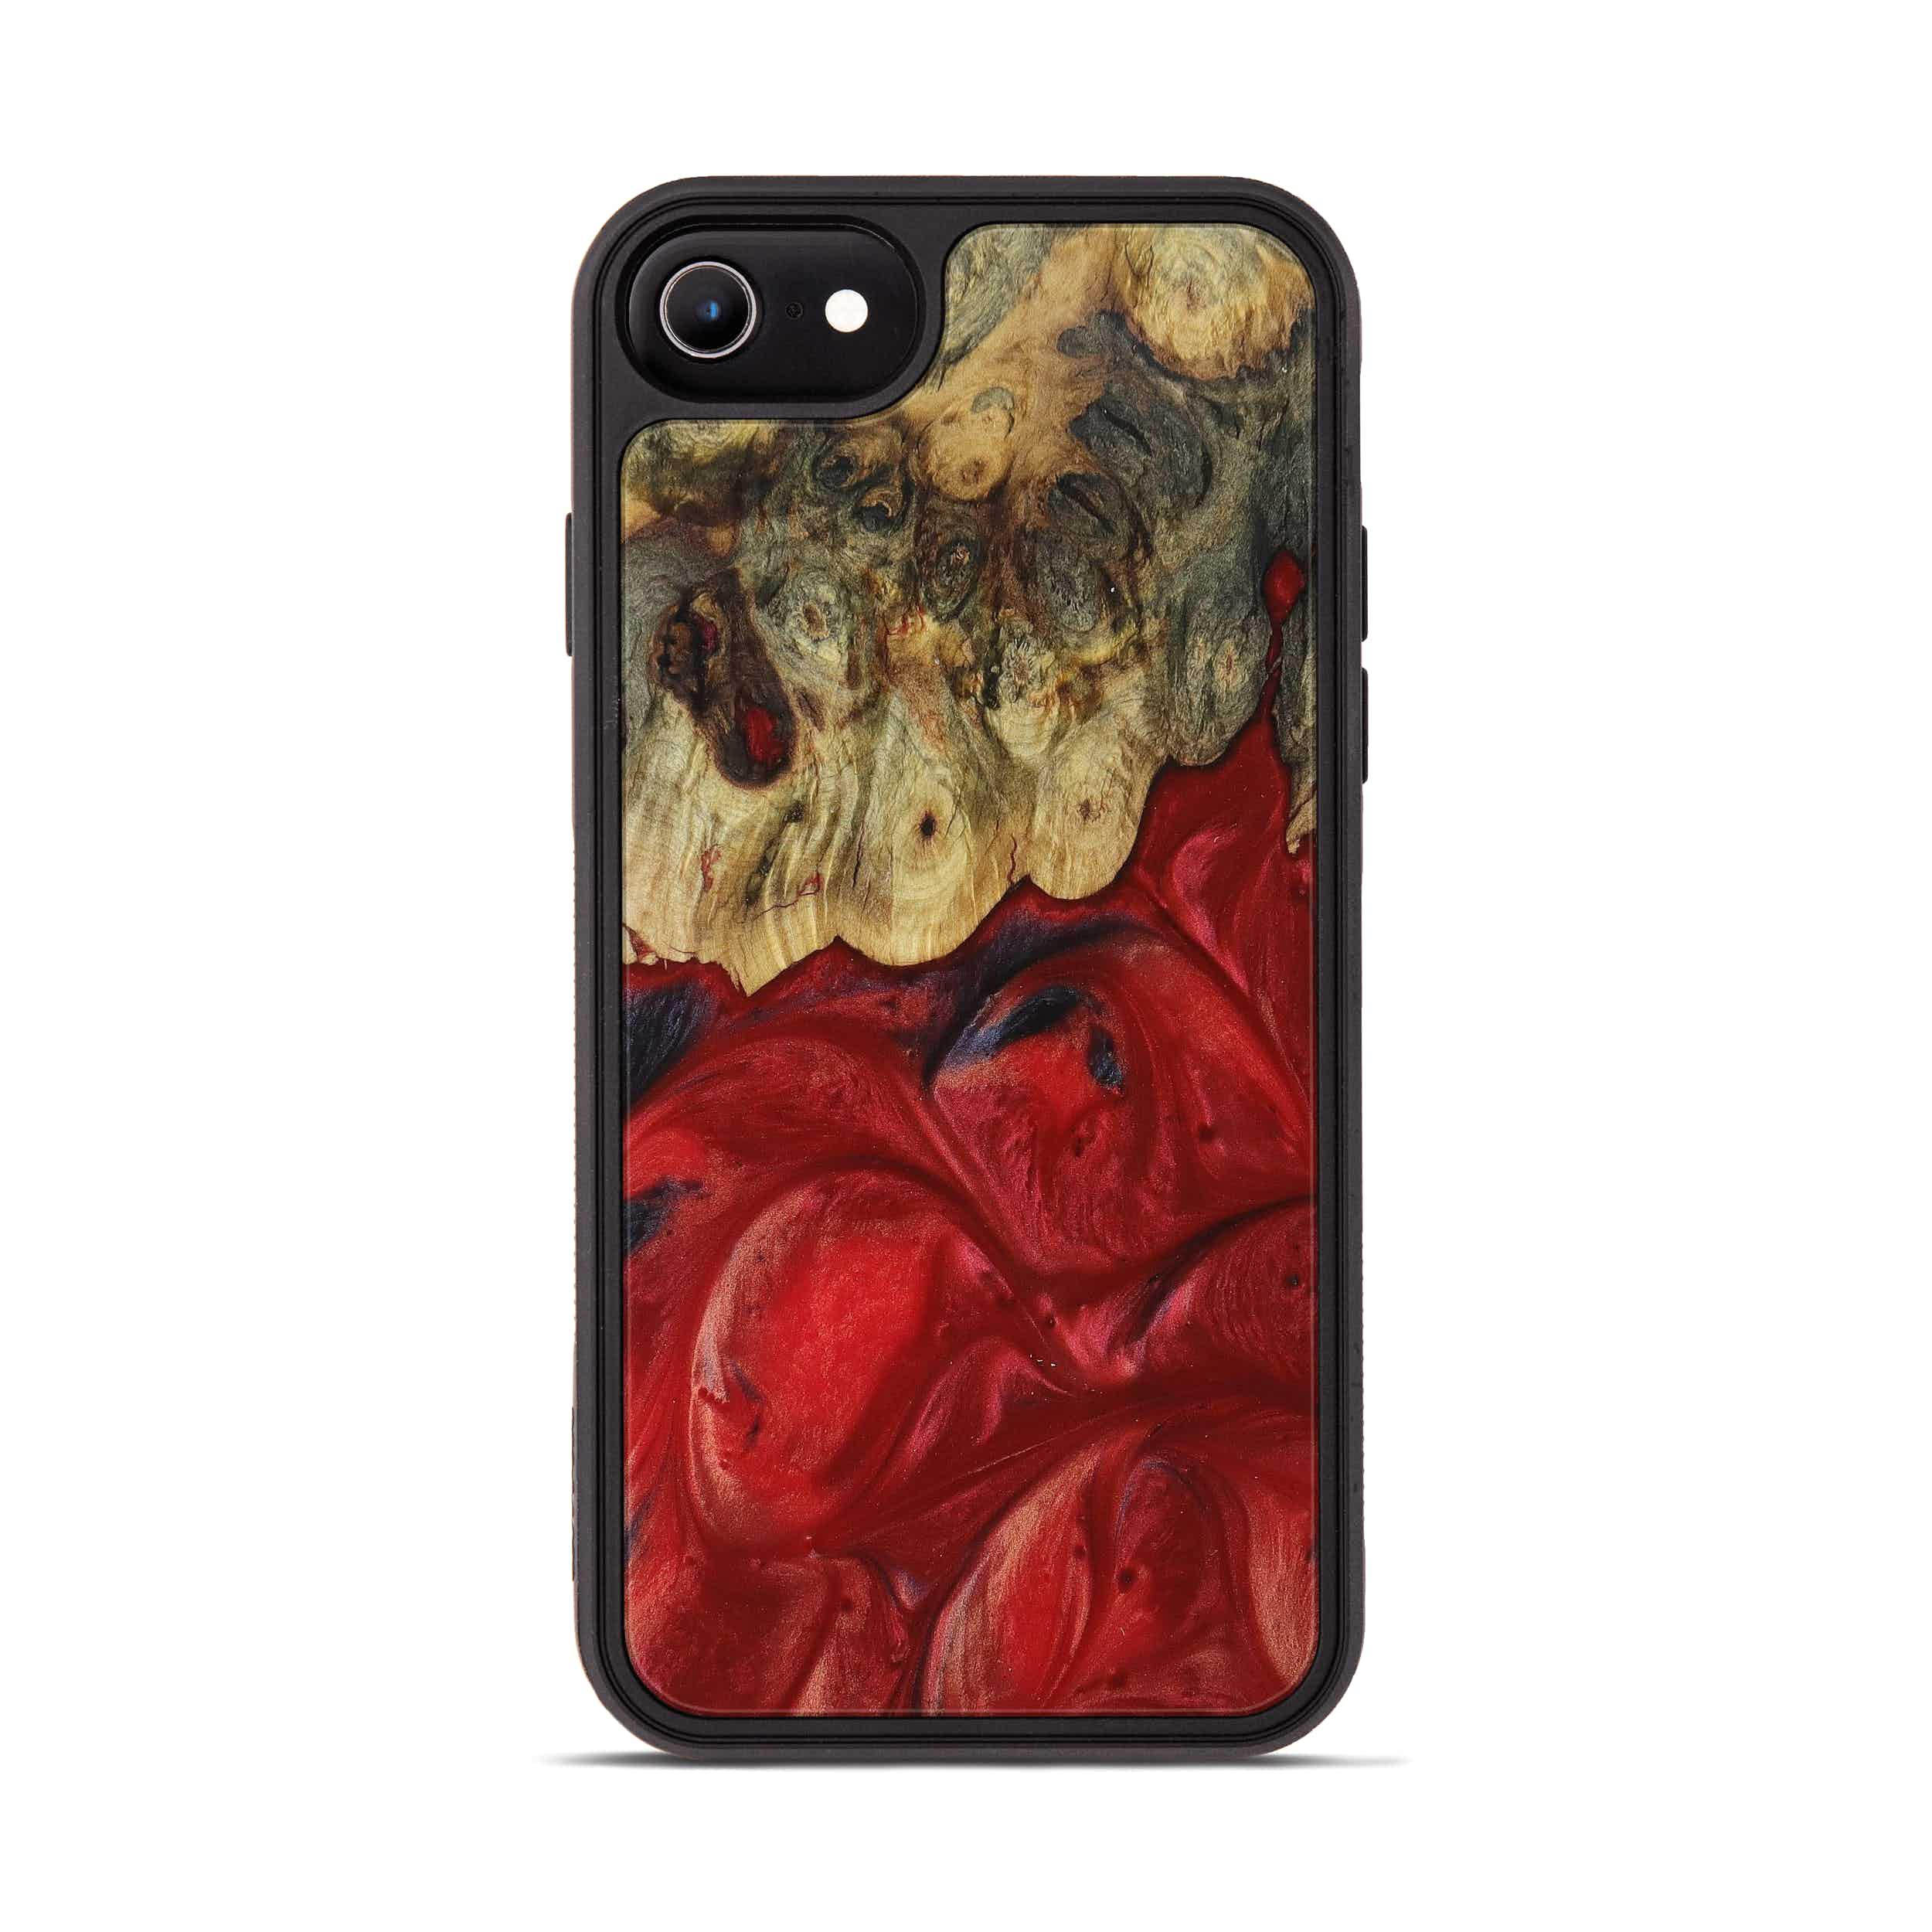 iPhone 6s Wood+Resin Phone Case - Chand (Dark Red, 395200)